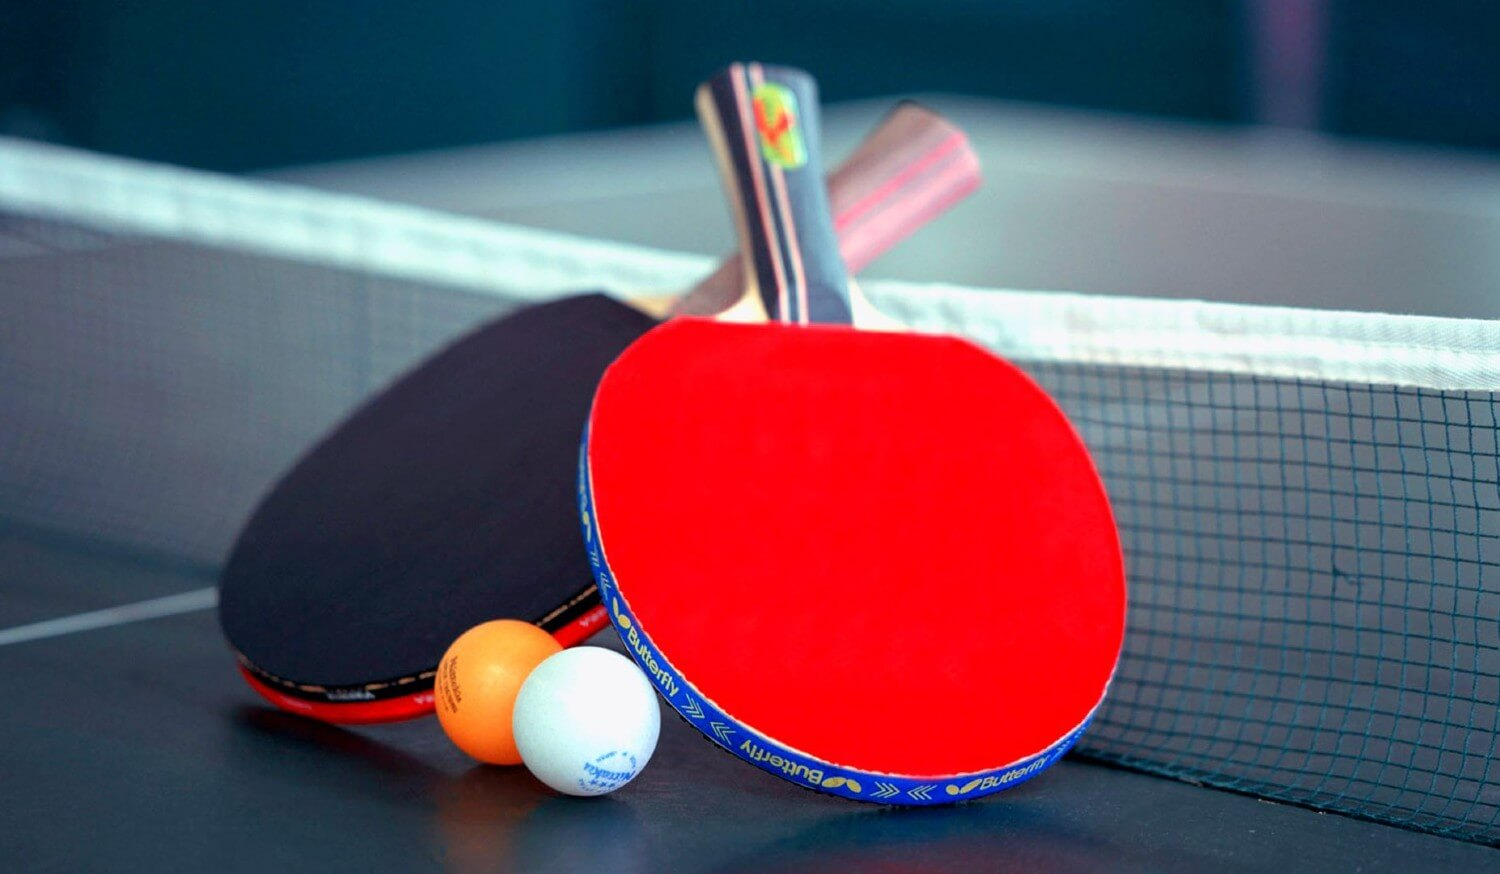 Various Kinds Of Table Tennis Shots